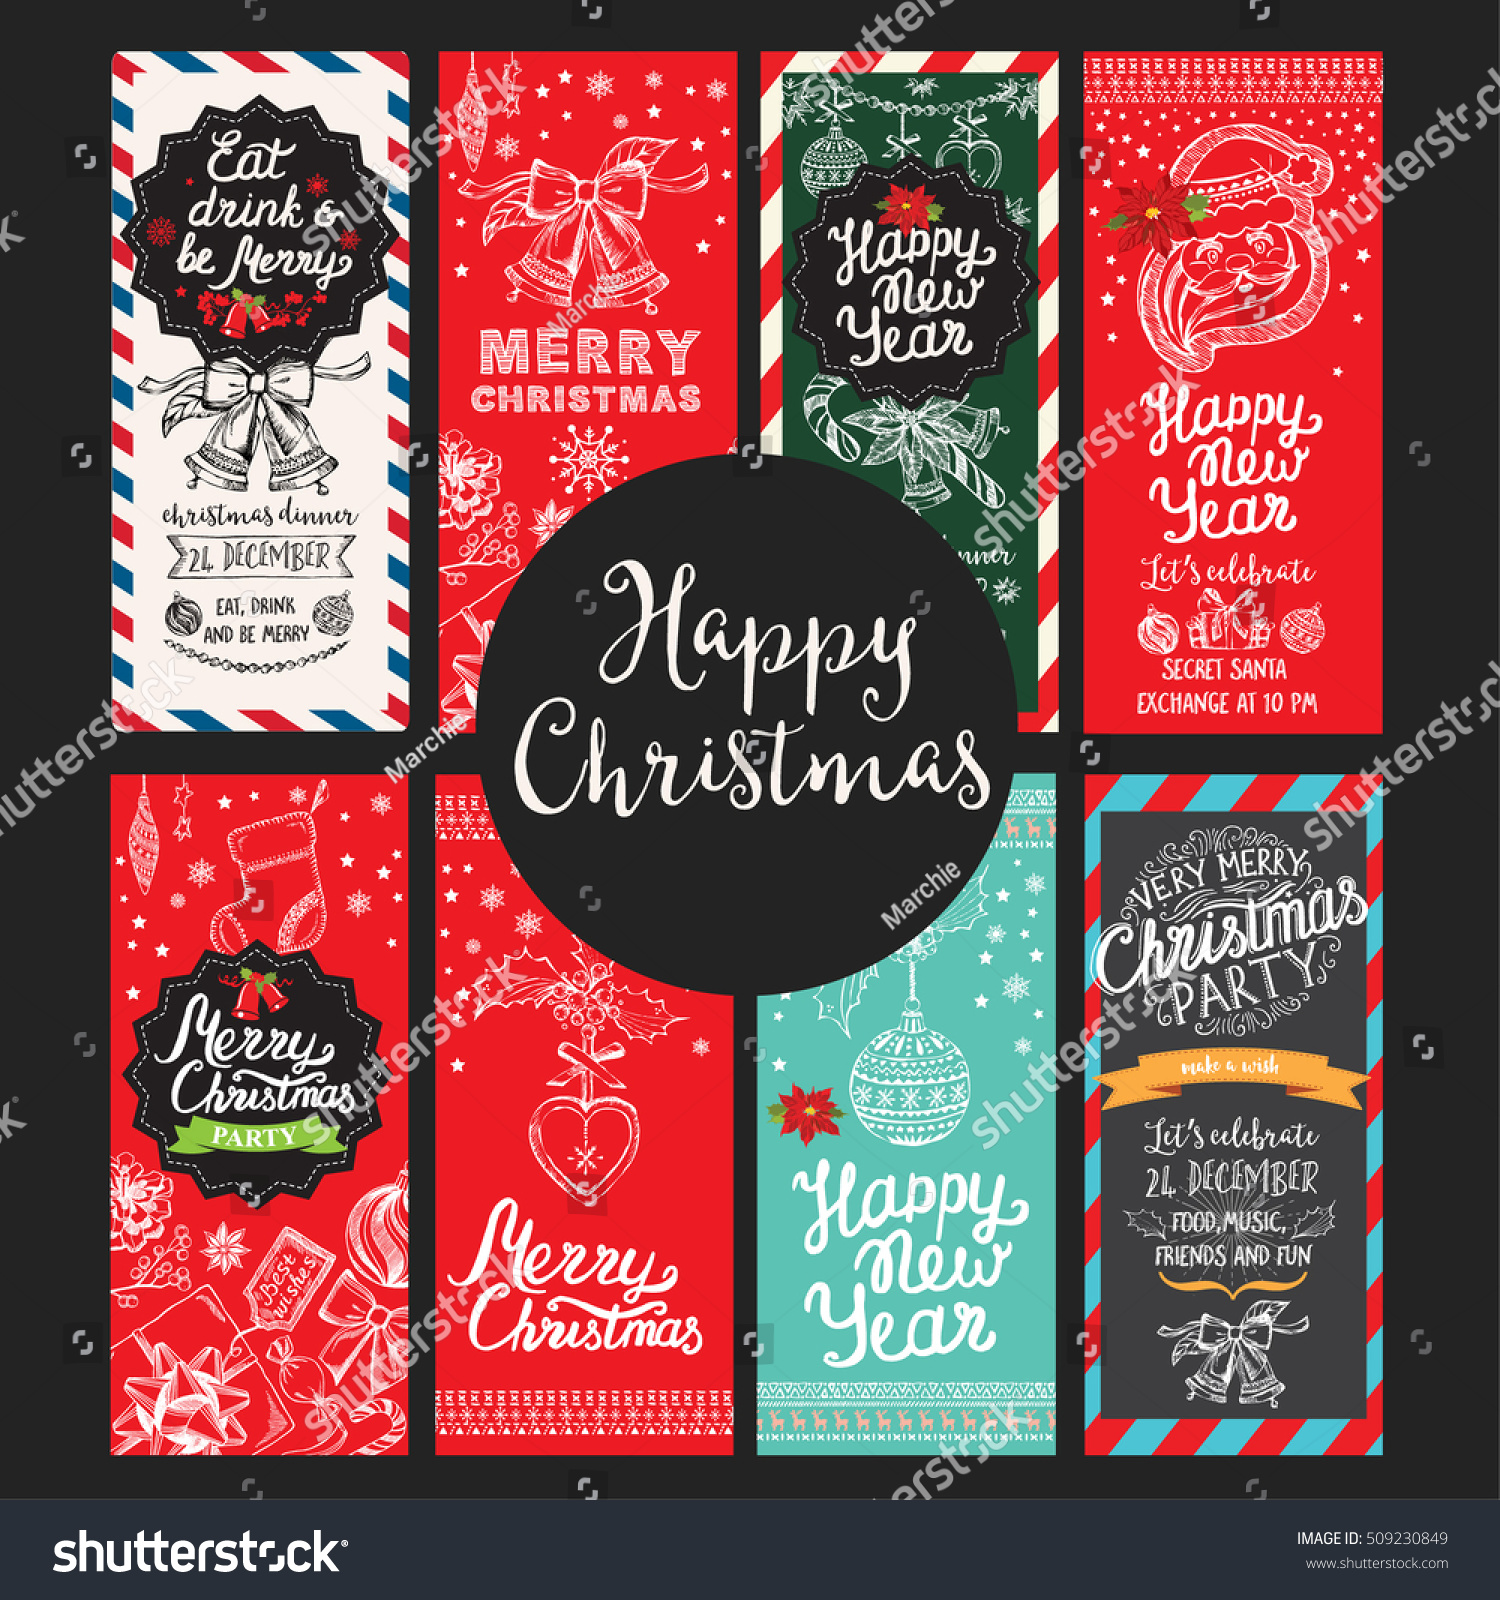 Christmas Restaurant Brochure, Menu Template. Vector Holiday Background And  Design Banner. Happy New